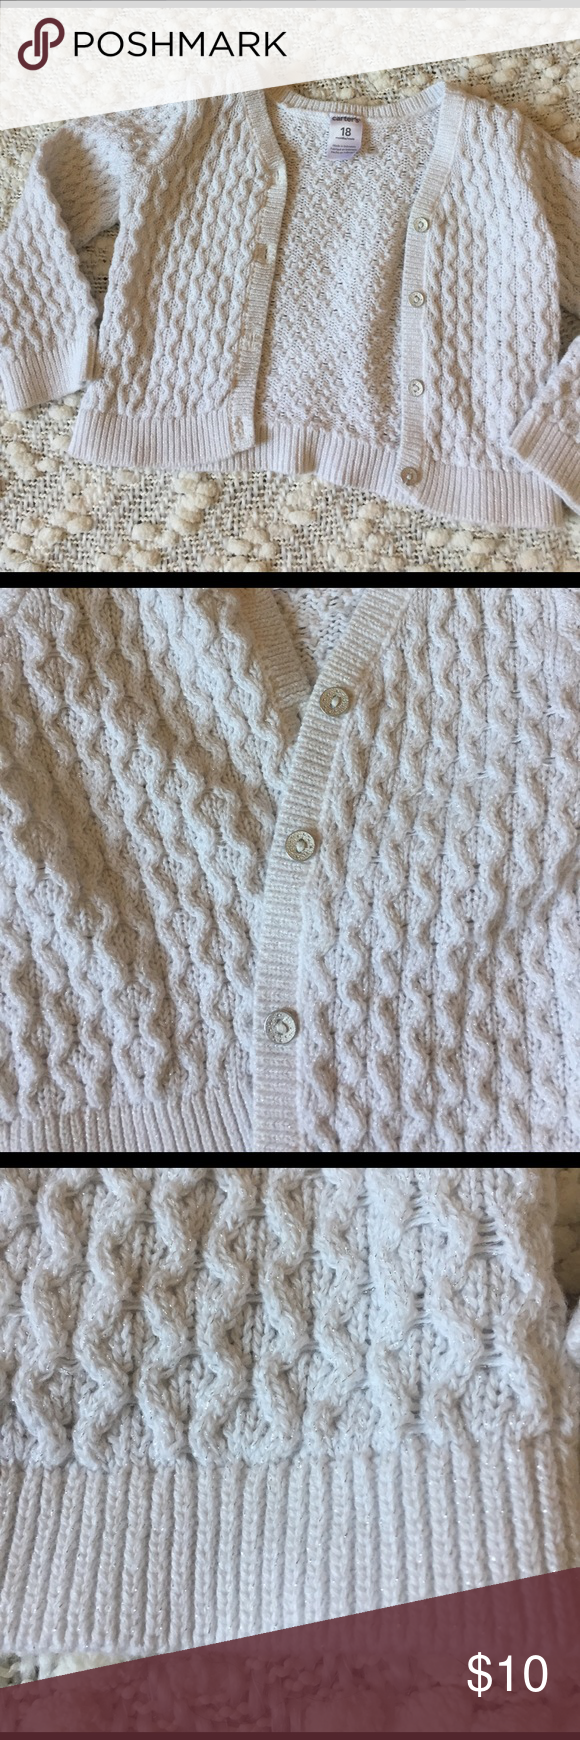 Carters white cardigan w/silver stitching💫Sparkly Adorable Cardigan / like new!! Perfect Condition Carter's Shirts & Tops Sweaters